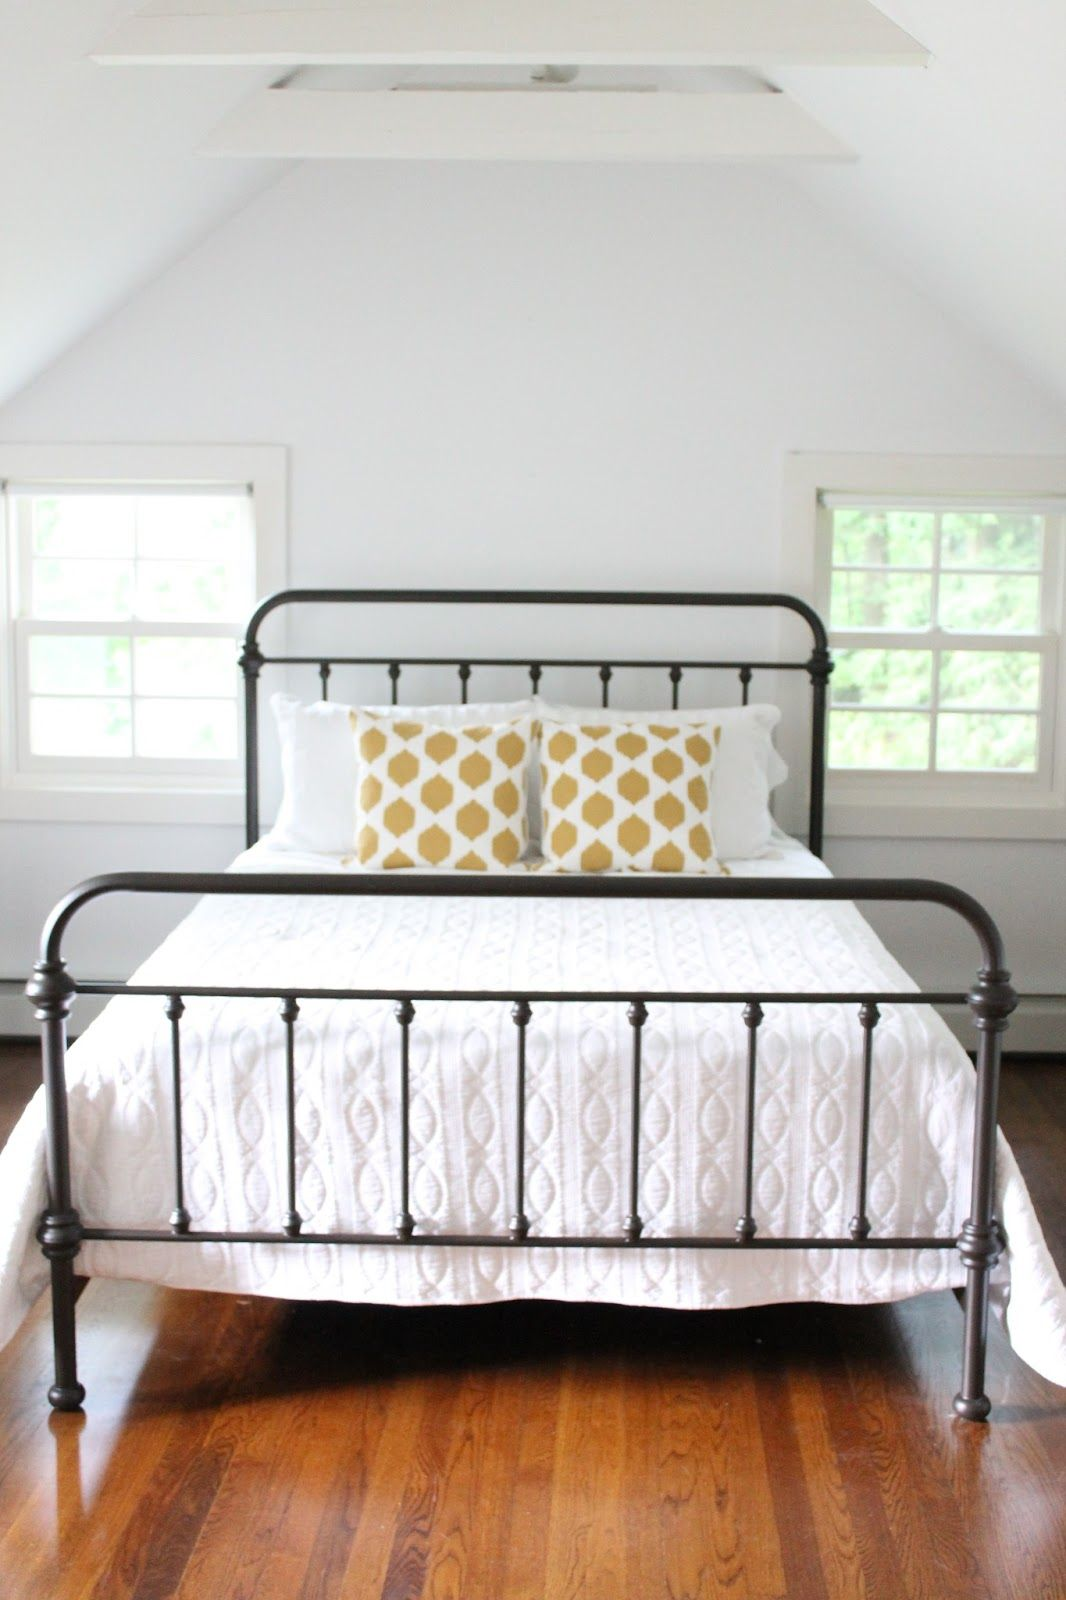 Iron Bed I M Debating Painting Mine A Different Color Than Brown Home Bedroom Iron Bed Iron Bed Frame